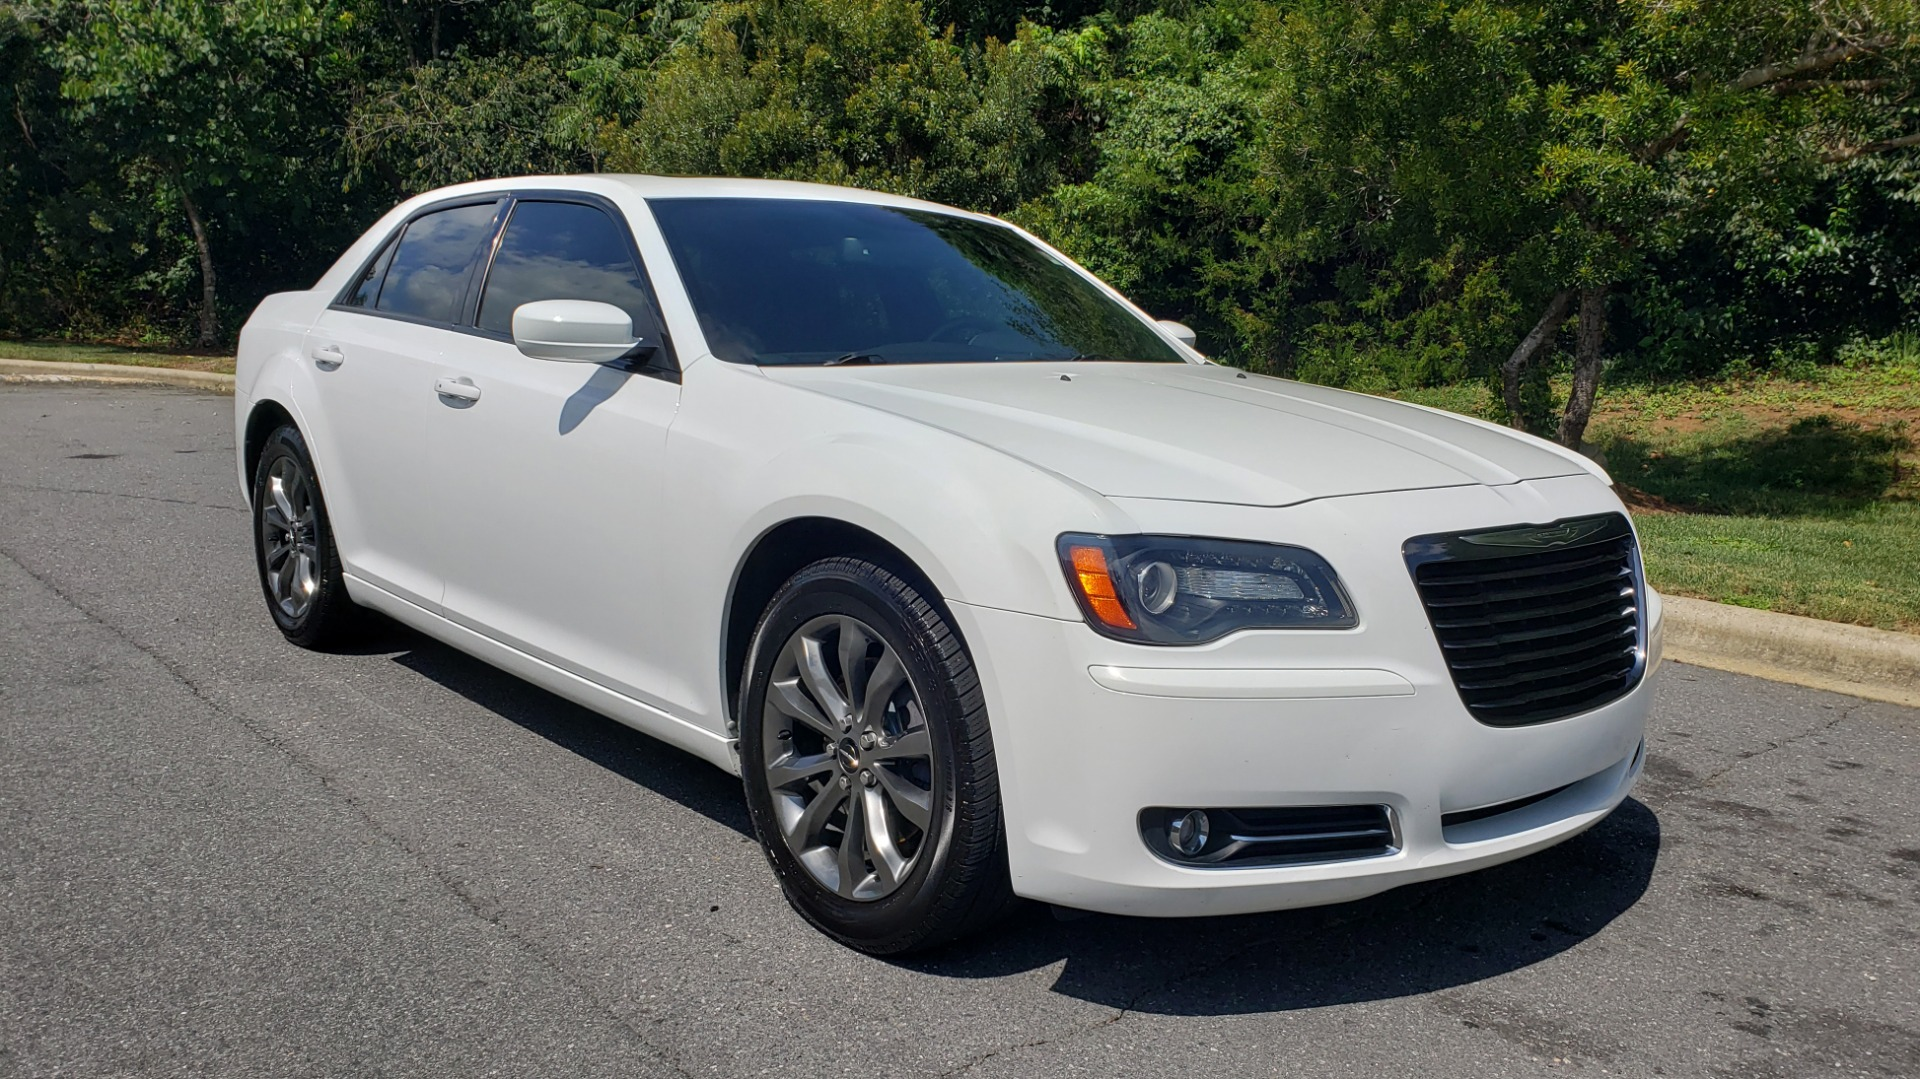 Used 2014 Chrysler 300 S / AWD / NAV / PANO-ROOF / HTD STS / BEATS SOUND / REARVIEW for sale Sold at Formula Imports in Charlotte NC 28227 4